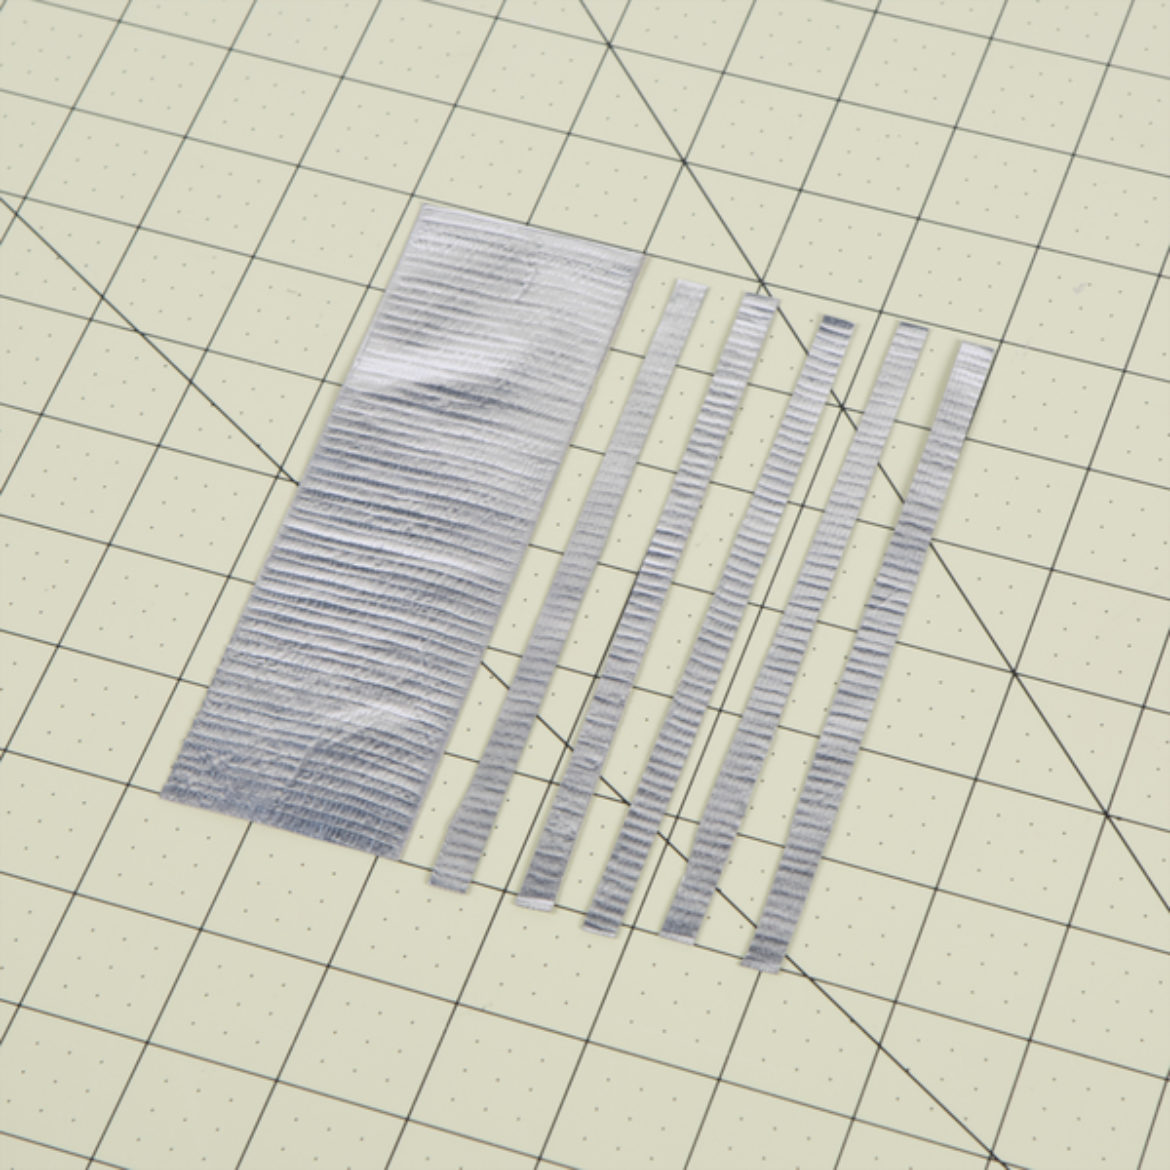 Strip of tape folded over itself length wise and cut into thin strips